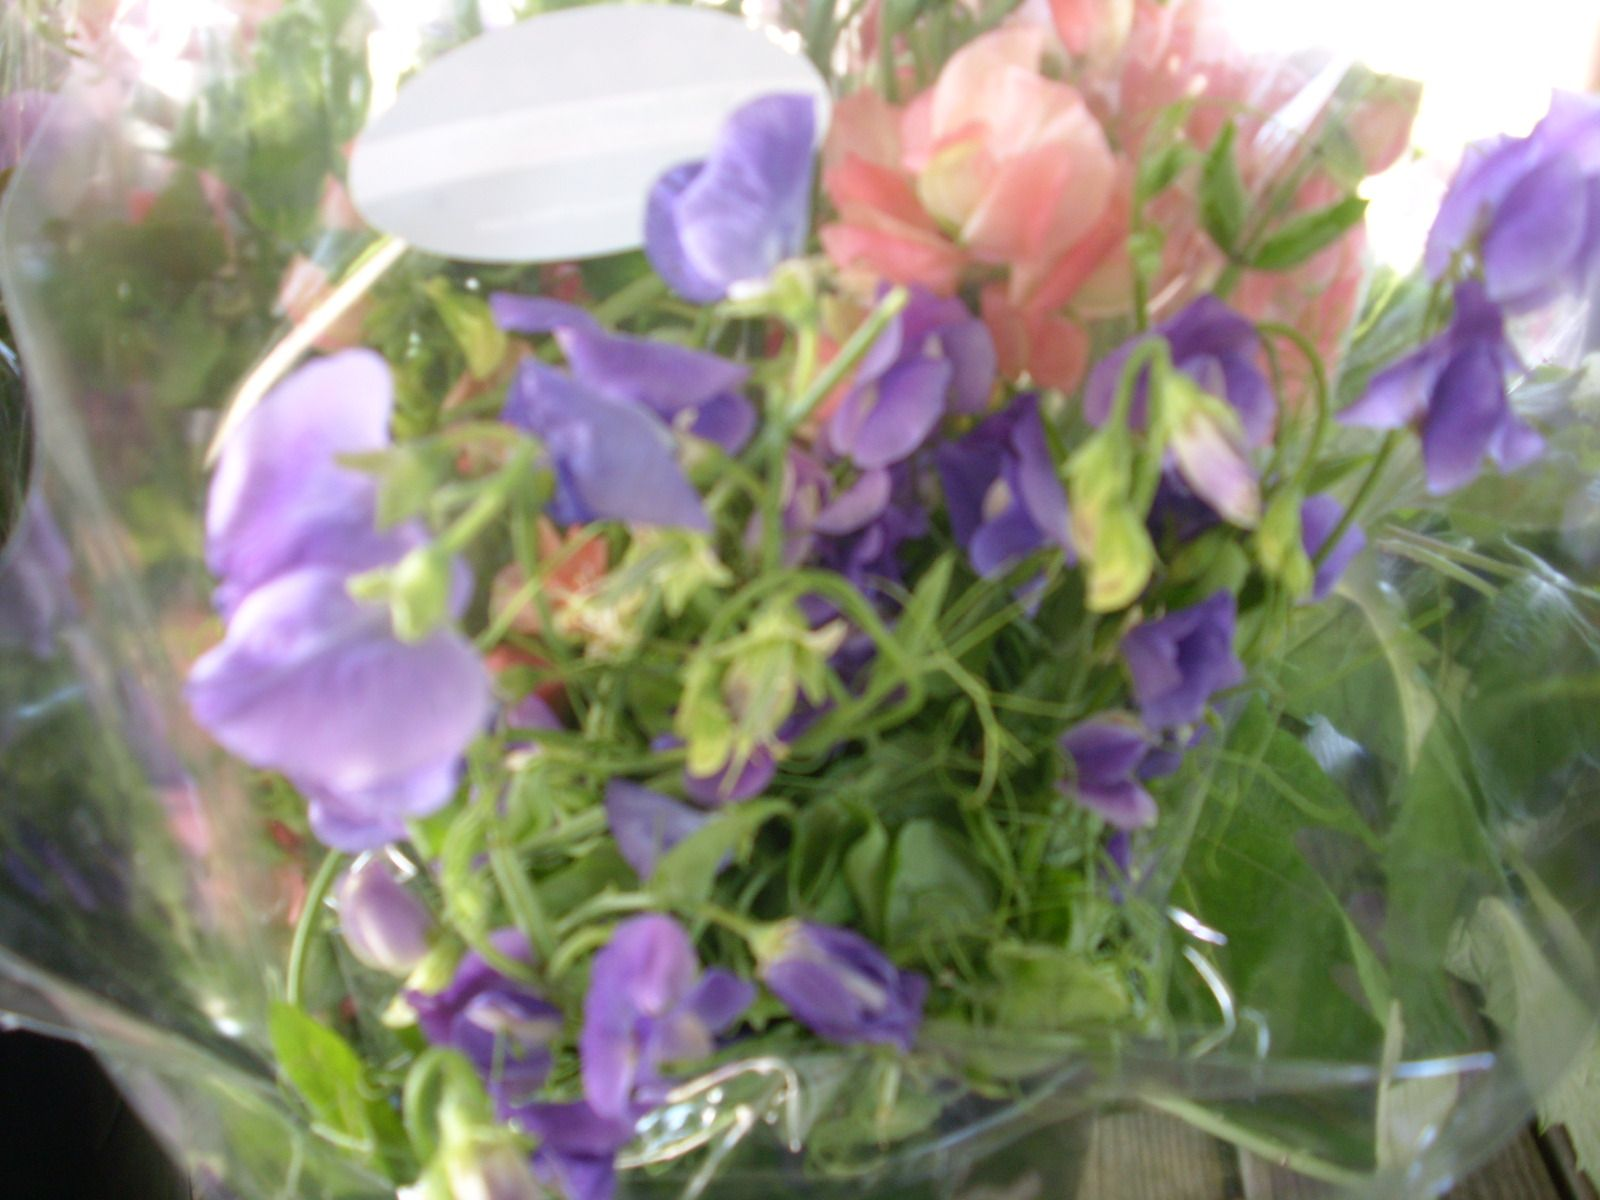 Dainty sweet peas, all dressed up for market